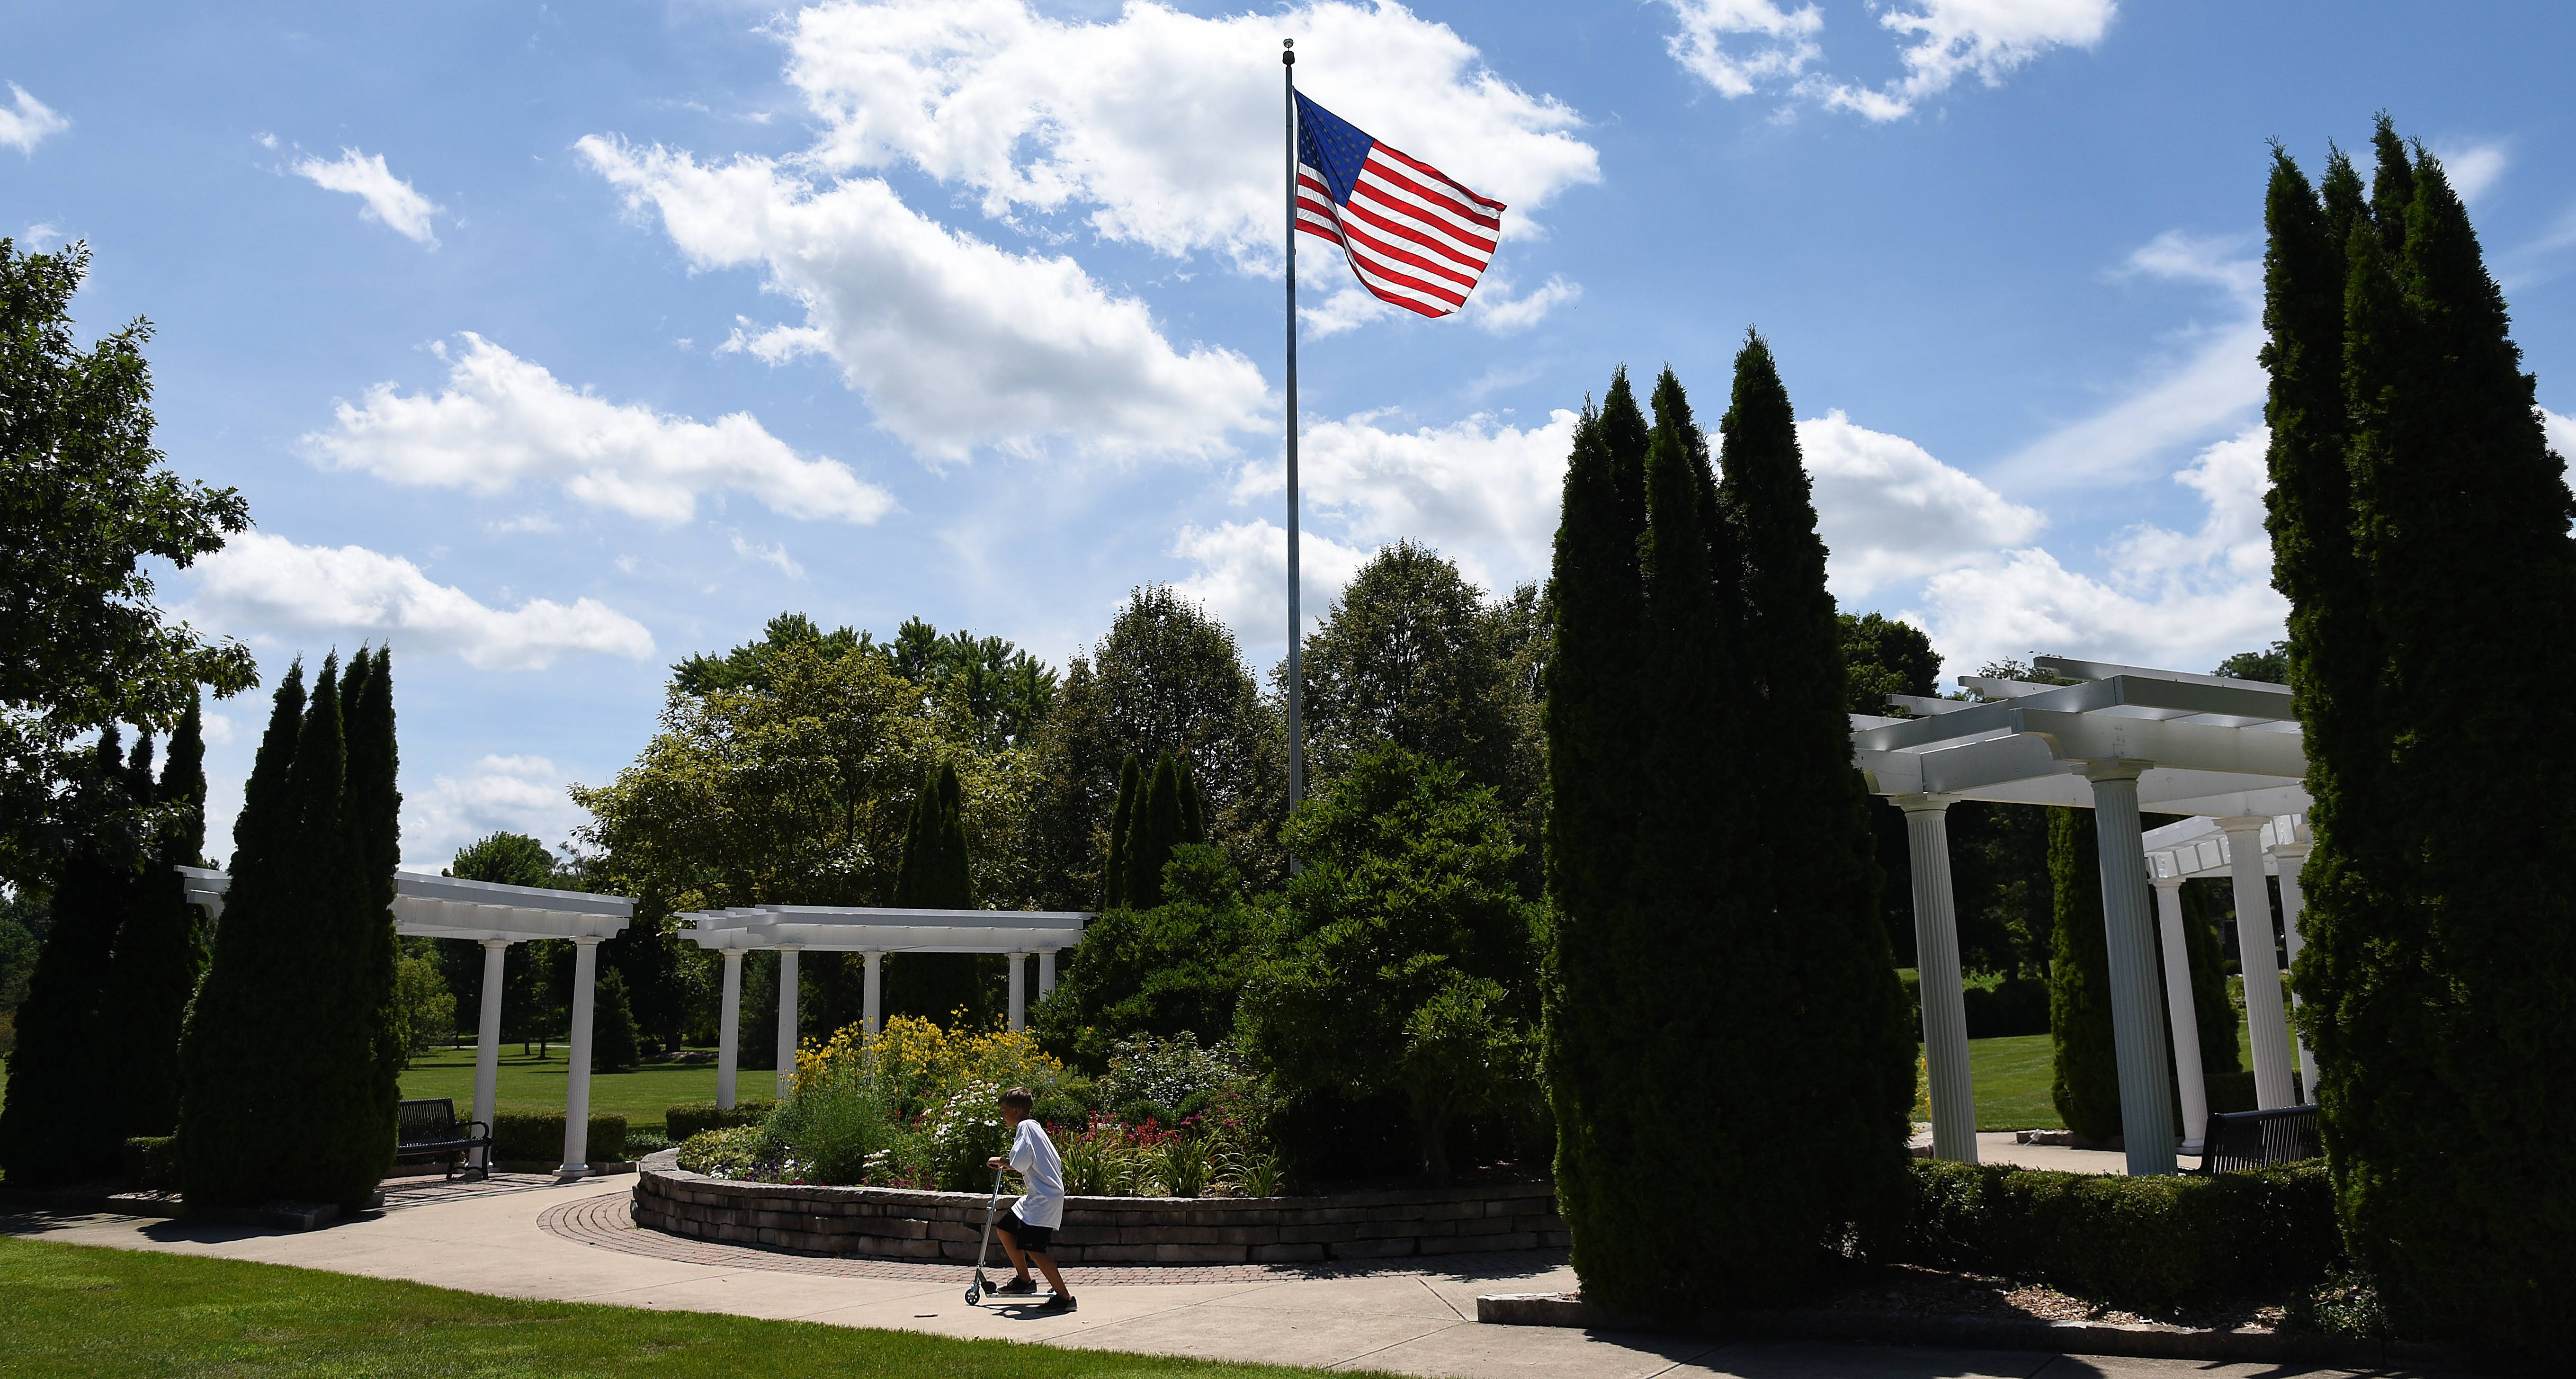 Benches and some shade afford a nice view of the American flag at Mount Saint Mary Park in St. Charles.